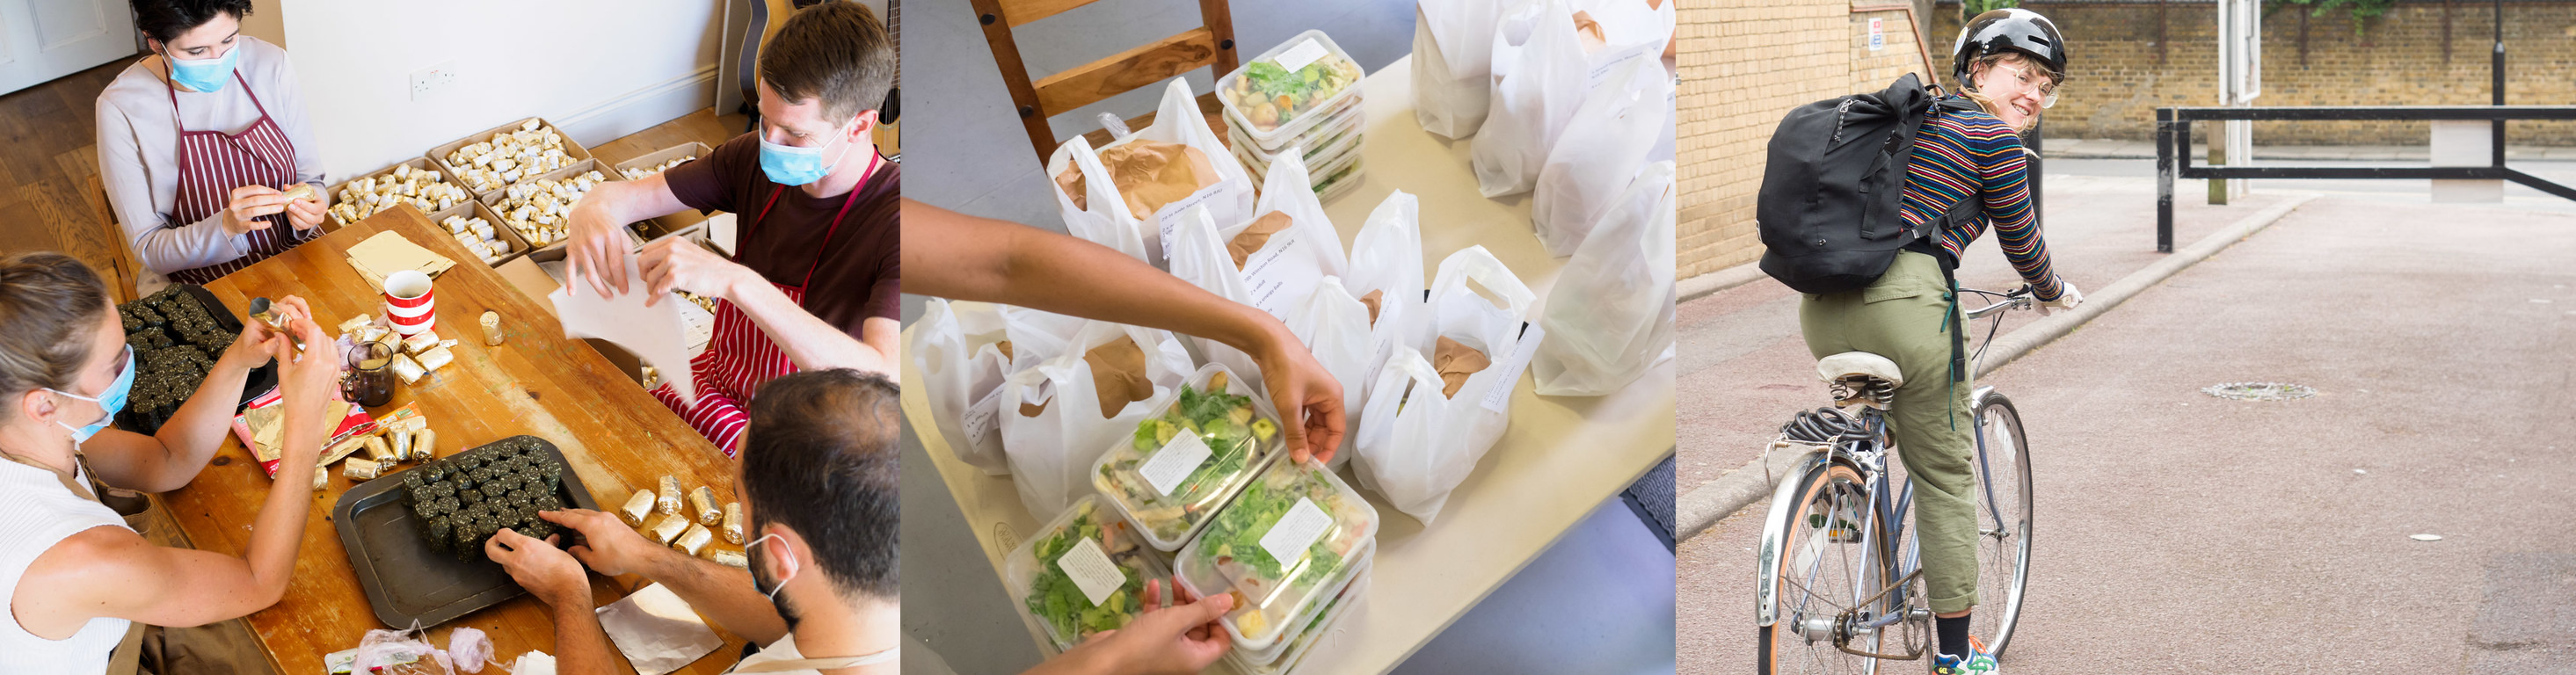 Go bites! prep, warm meals in containers ready for delivery, bicycle courier